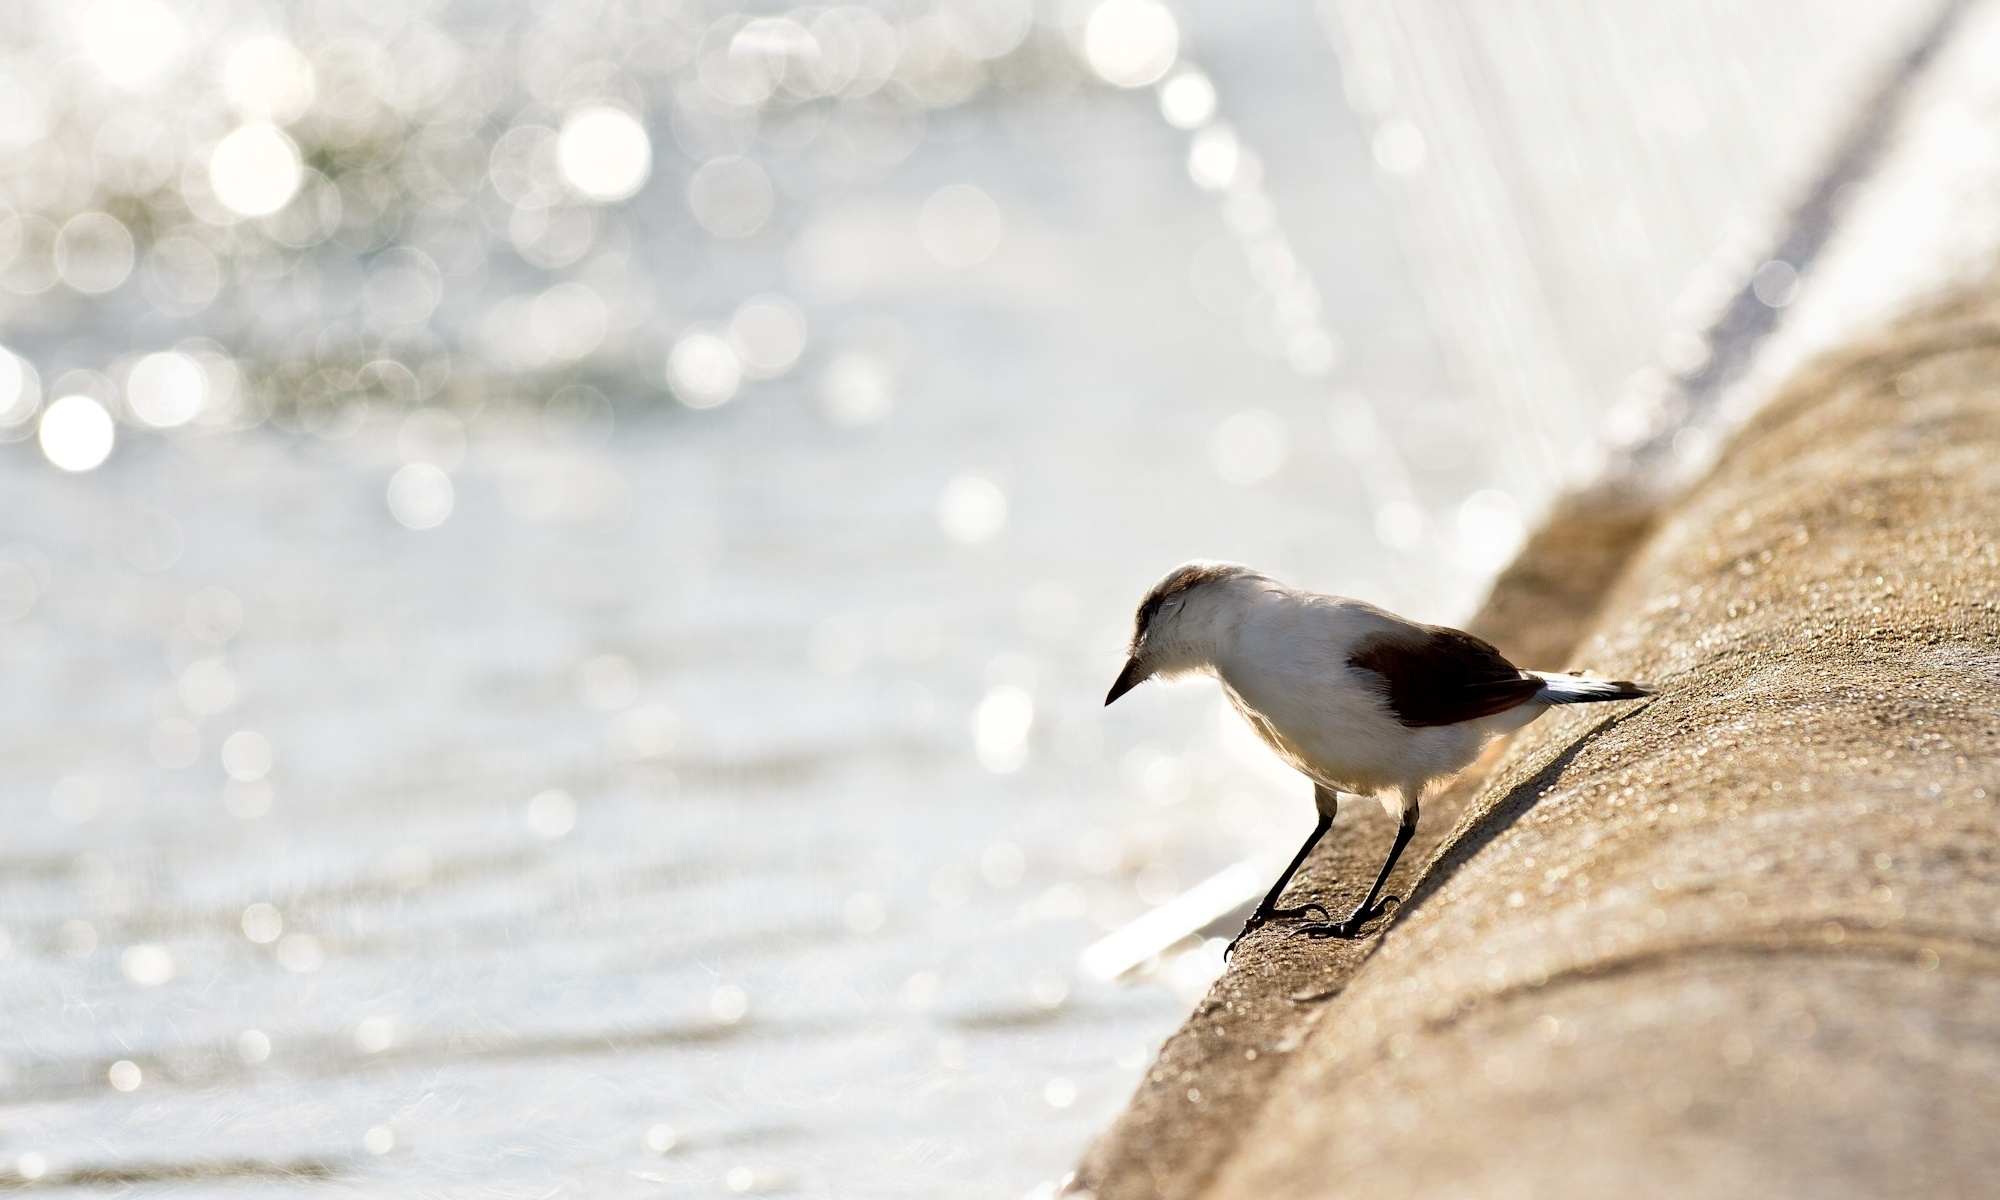 114771 download wallpaper Animals, Bird, Gull, Seagull, Shore, Bank, Shine, Light screensavers and pictures for free